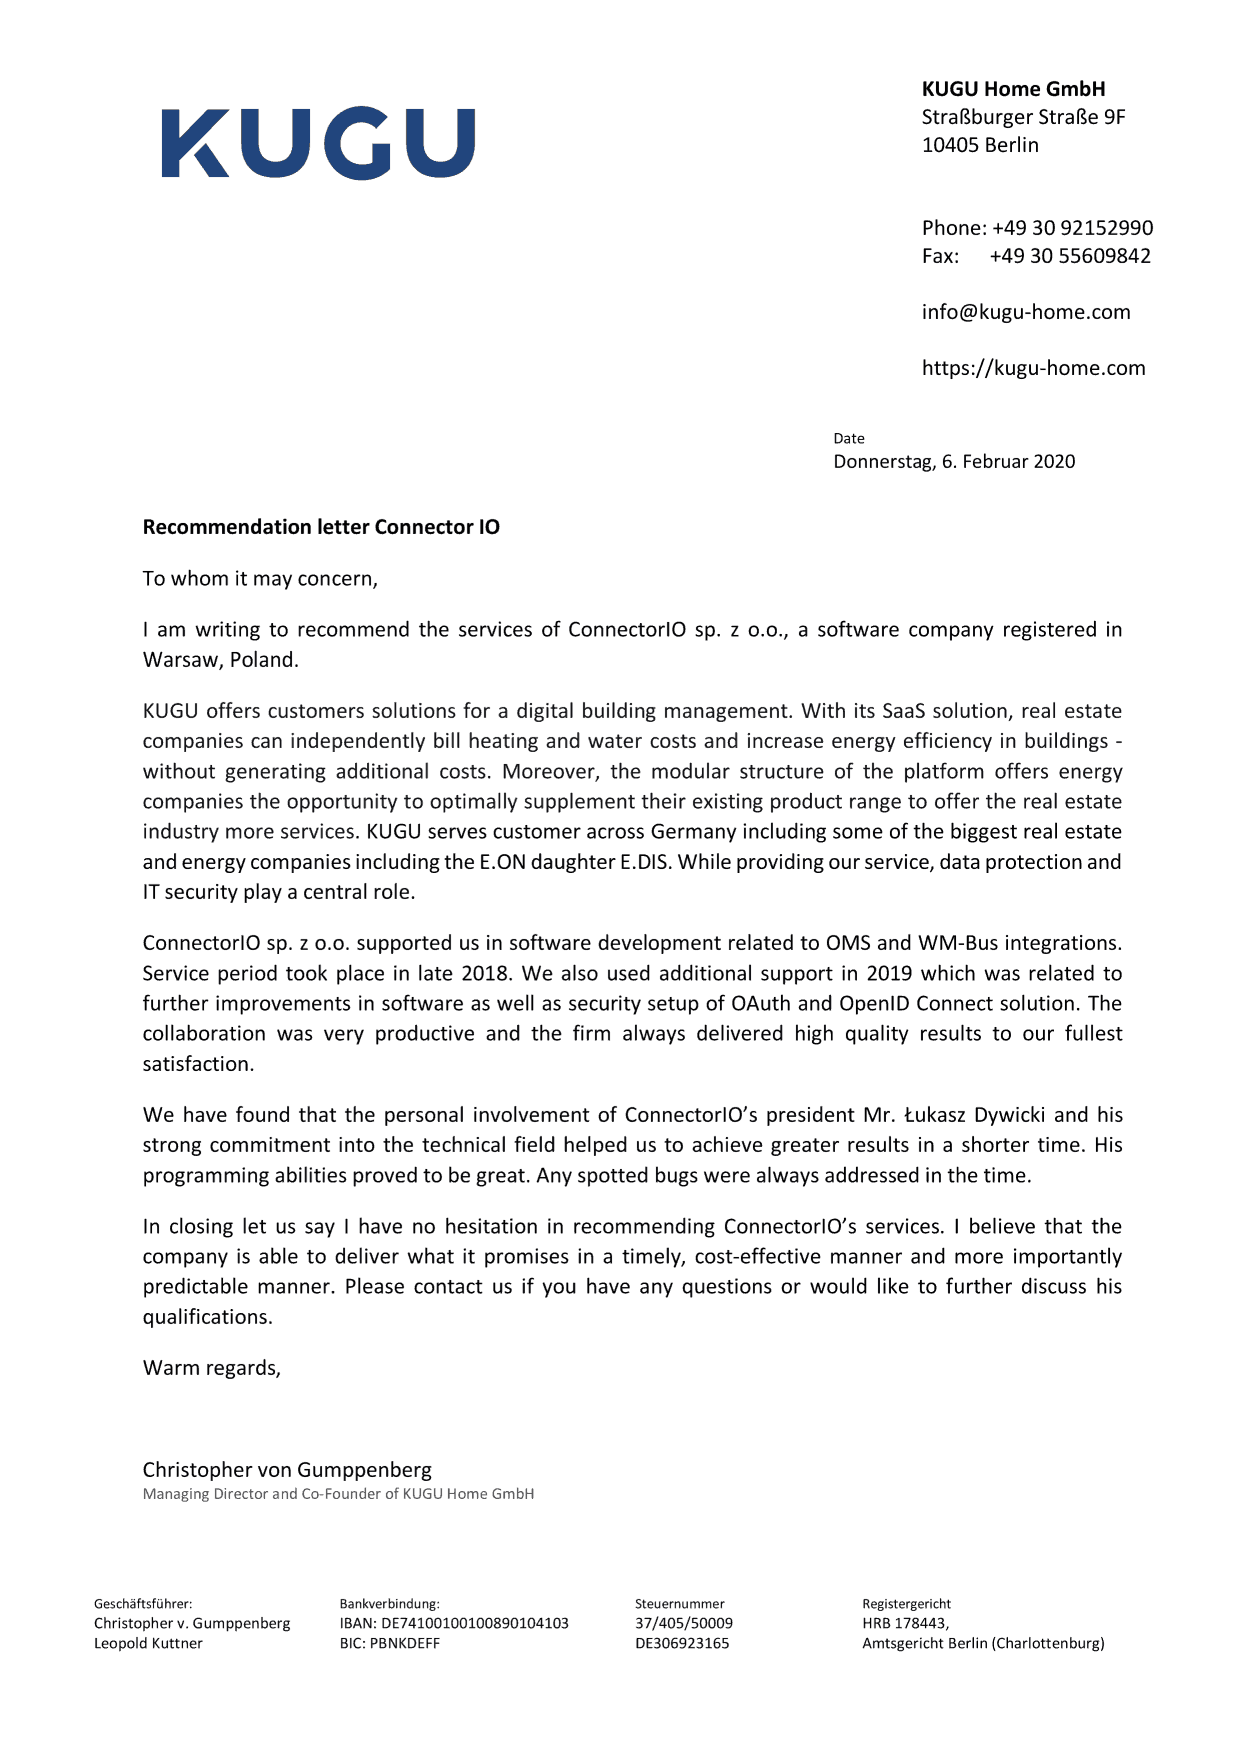 KUGU Connectorio recommendation letter